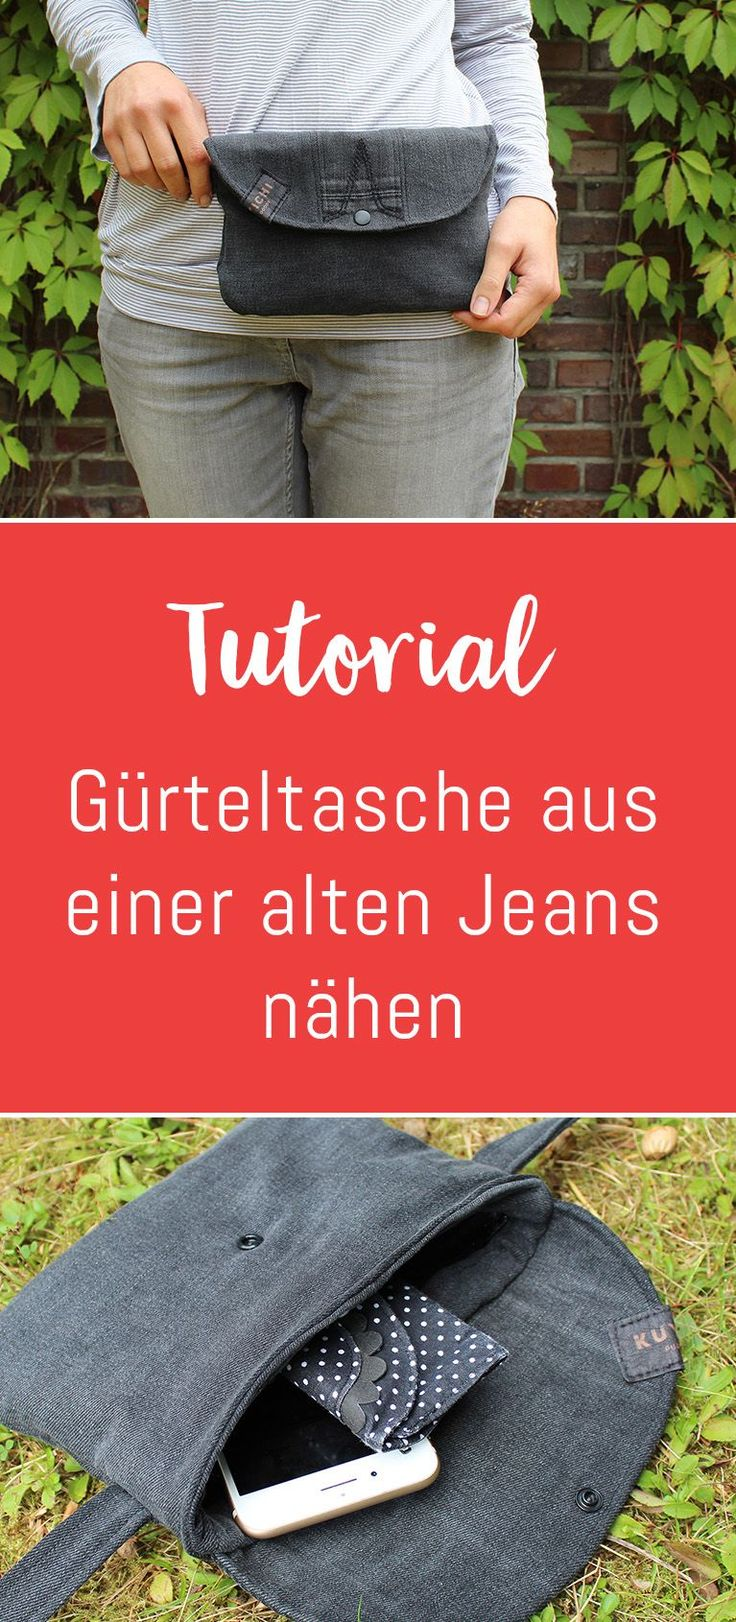 Upcycling project: sewing a belt bag from an old jeans